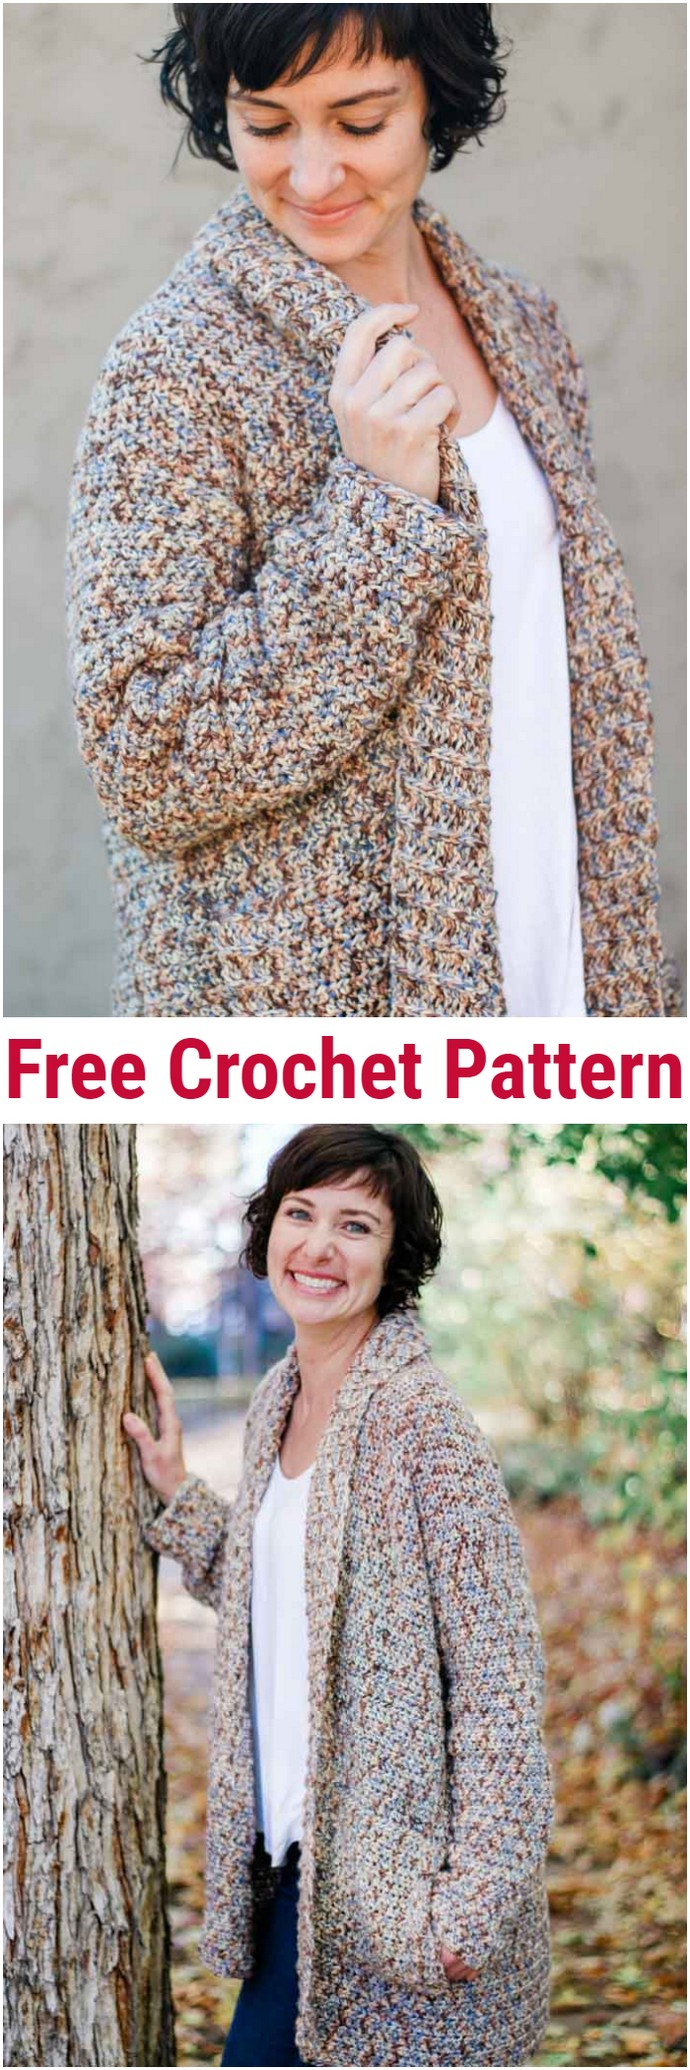 Up North Crochet Cardigan Pattern